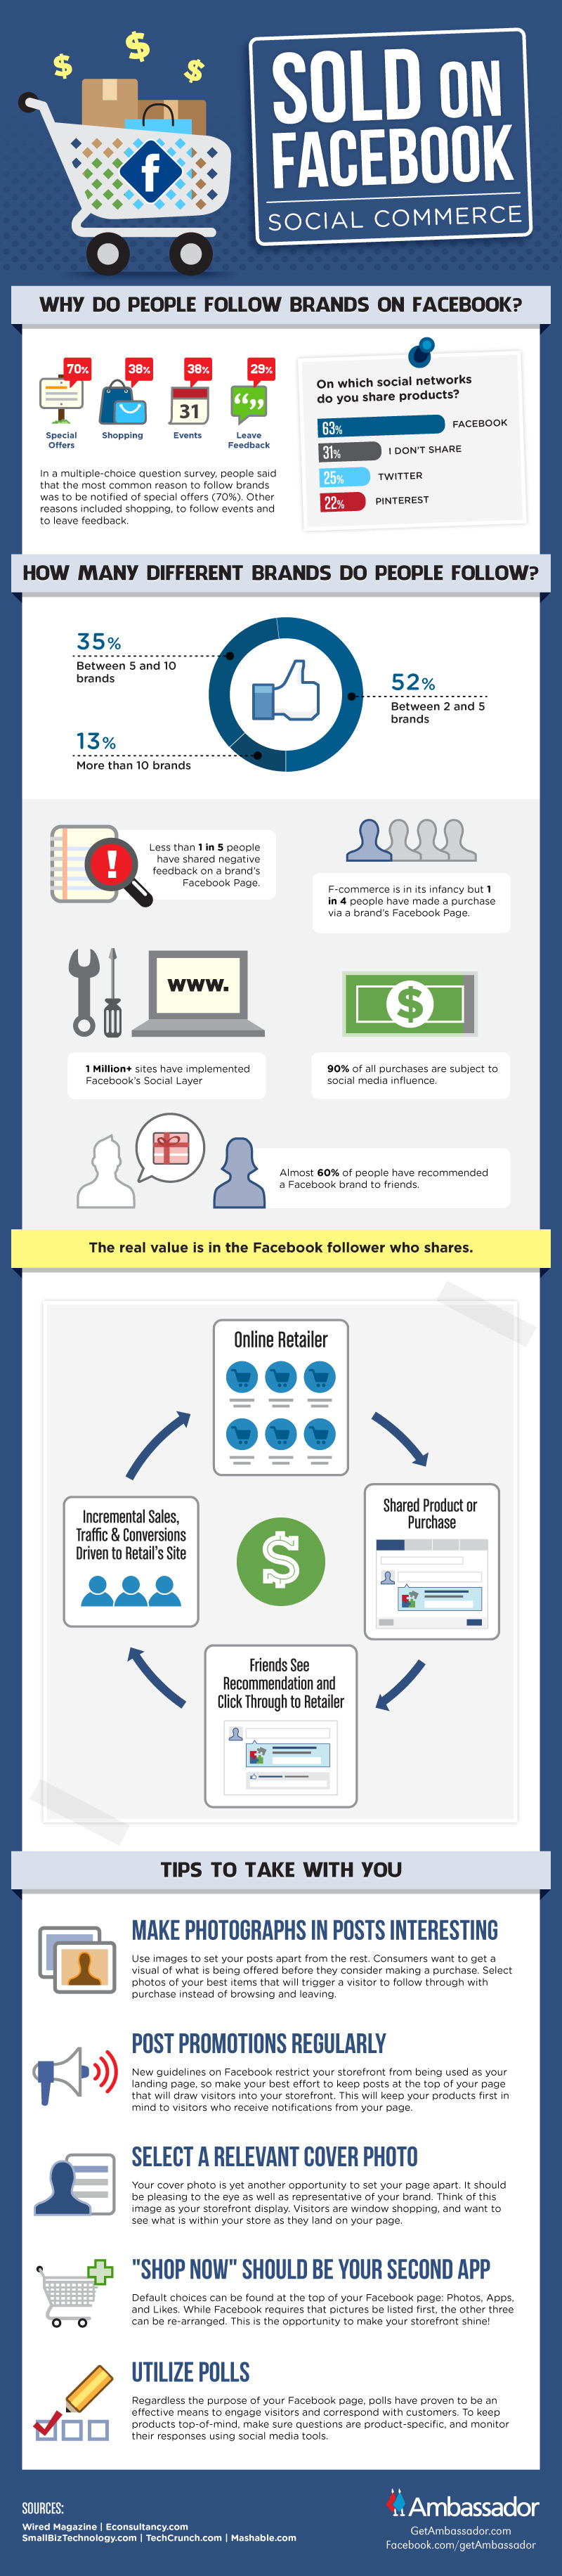 sold-on-facebook--social-commerce